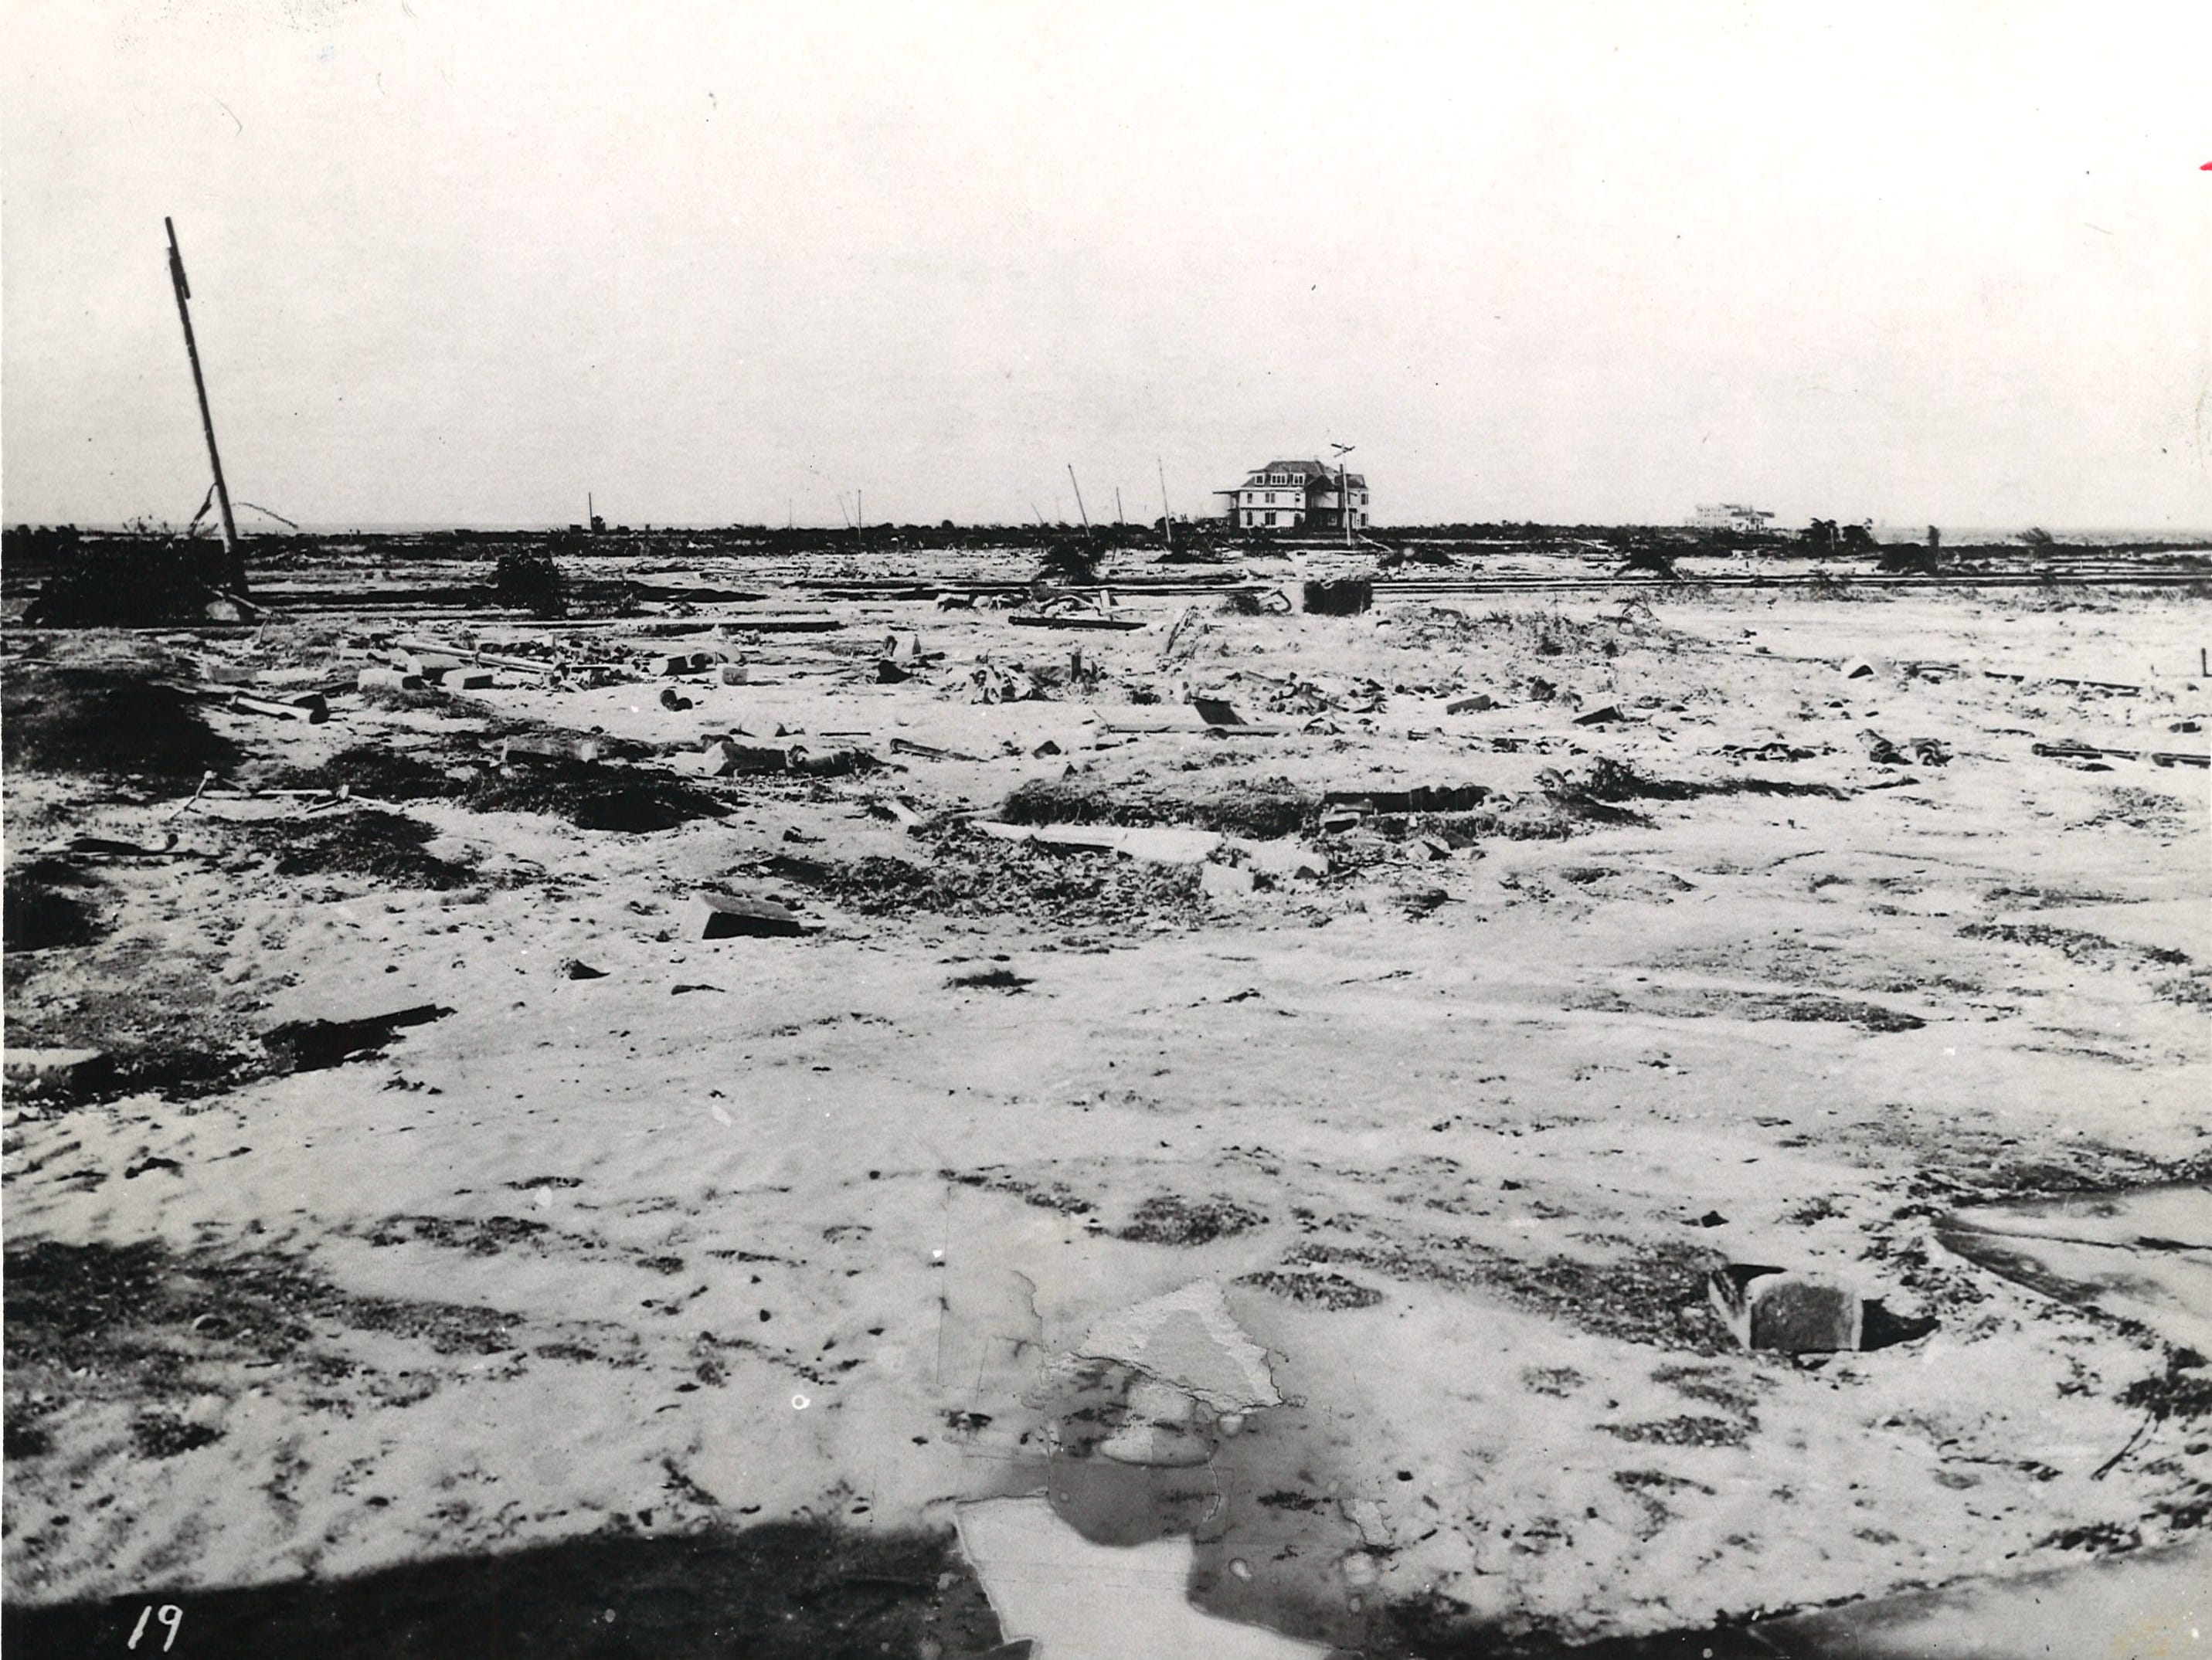 Spohn Sanitarium (in distance) was one of only three buildings left standing on Corpus Christi's North Beach following the 1919 hurricane.